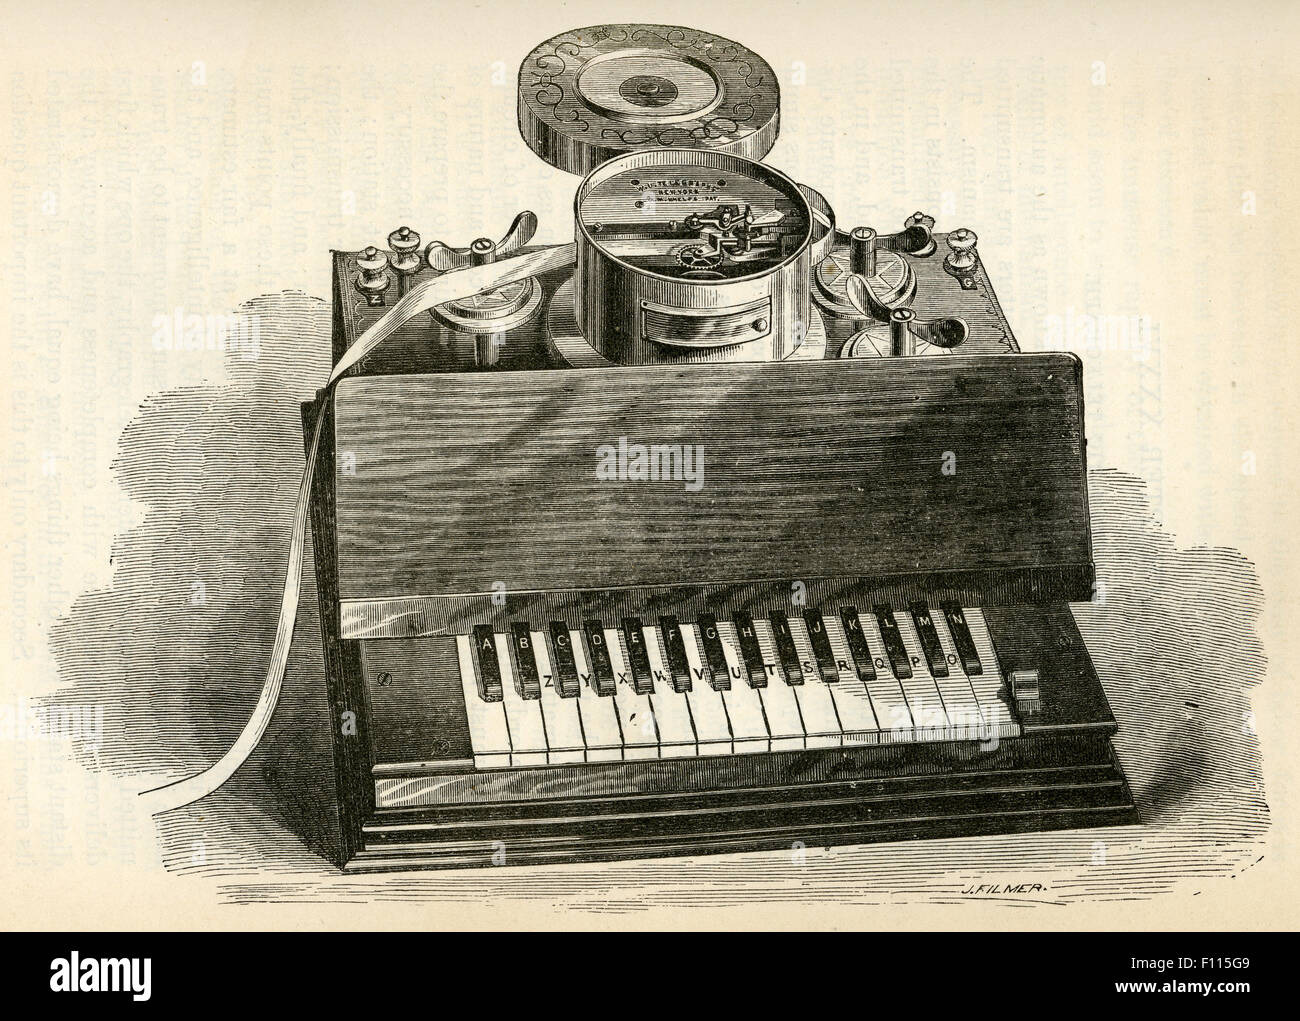 Antique 1877 engraving, Phelps's Printing Telegraph for Private Lines with piano keyboard configuration. - Stock Image